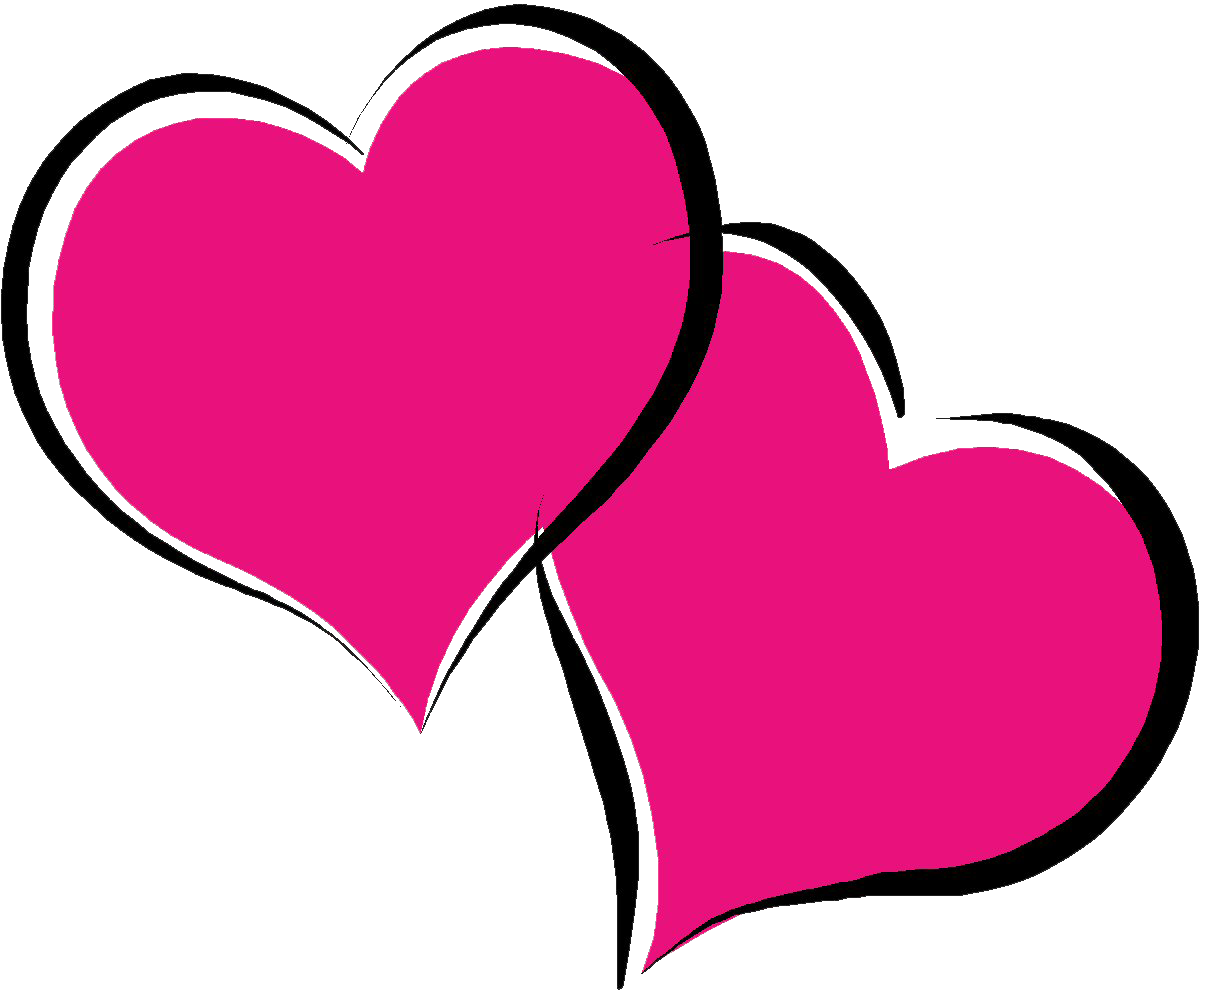 Hot pink heart clipart picture freeuse download Hot Pink Heart PNG Pic picture freeuse download